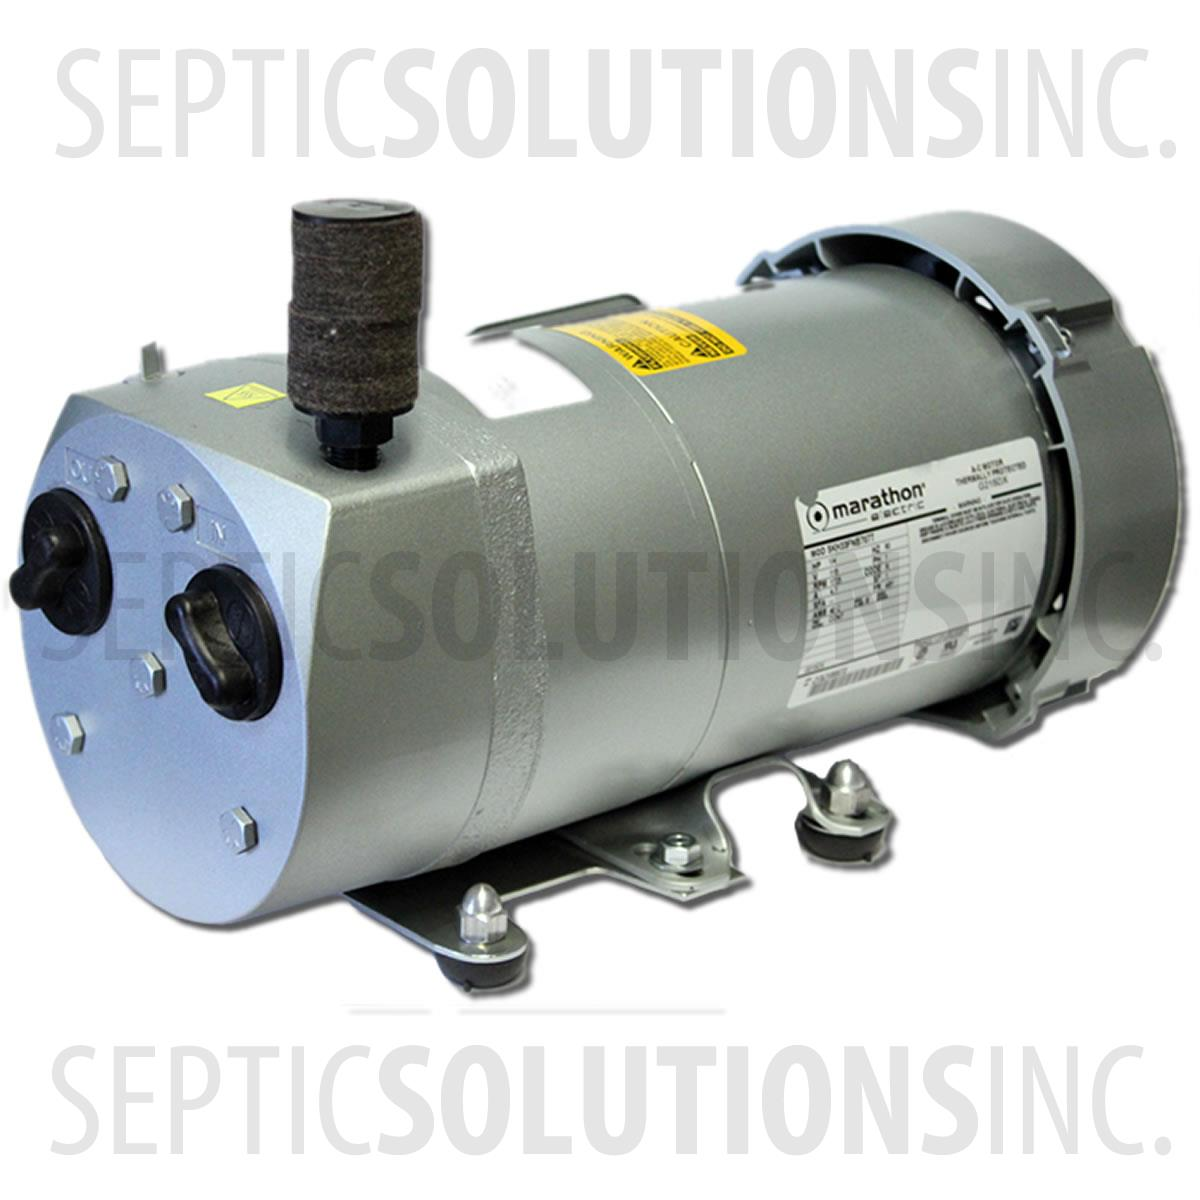 CS500RV_1?w=600 clearstream aerobic septic system air pumps and repair parts  at edmiracle.co